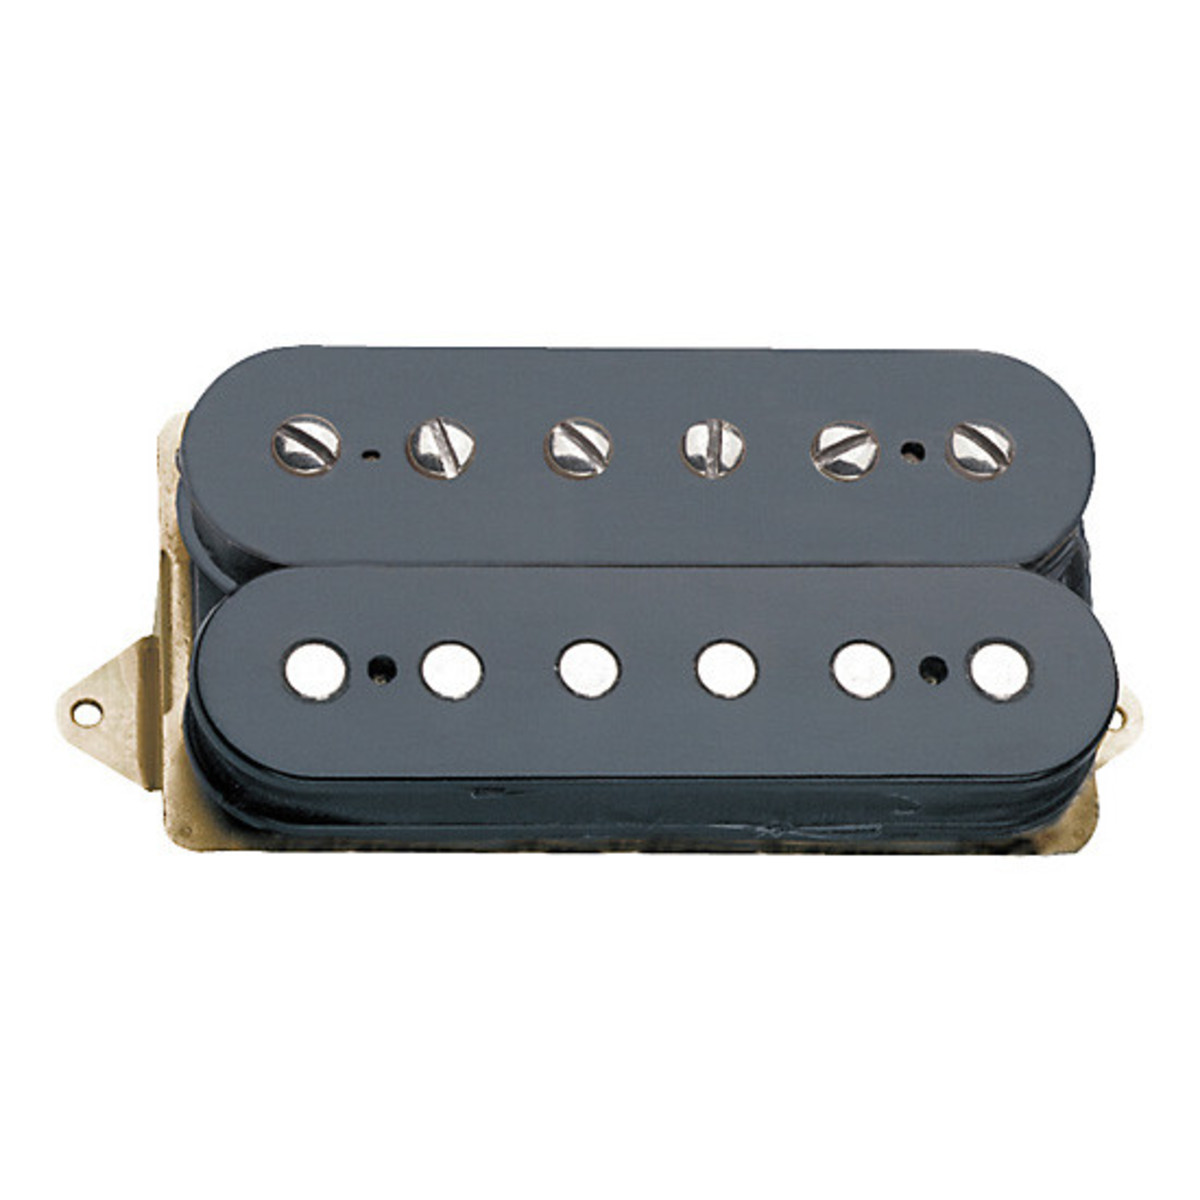 dimarzio dp156 the humbucker from hell guitar pickup black at gear4music. Black Bedroom Furniture Sets. Home Design Ideas